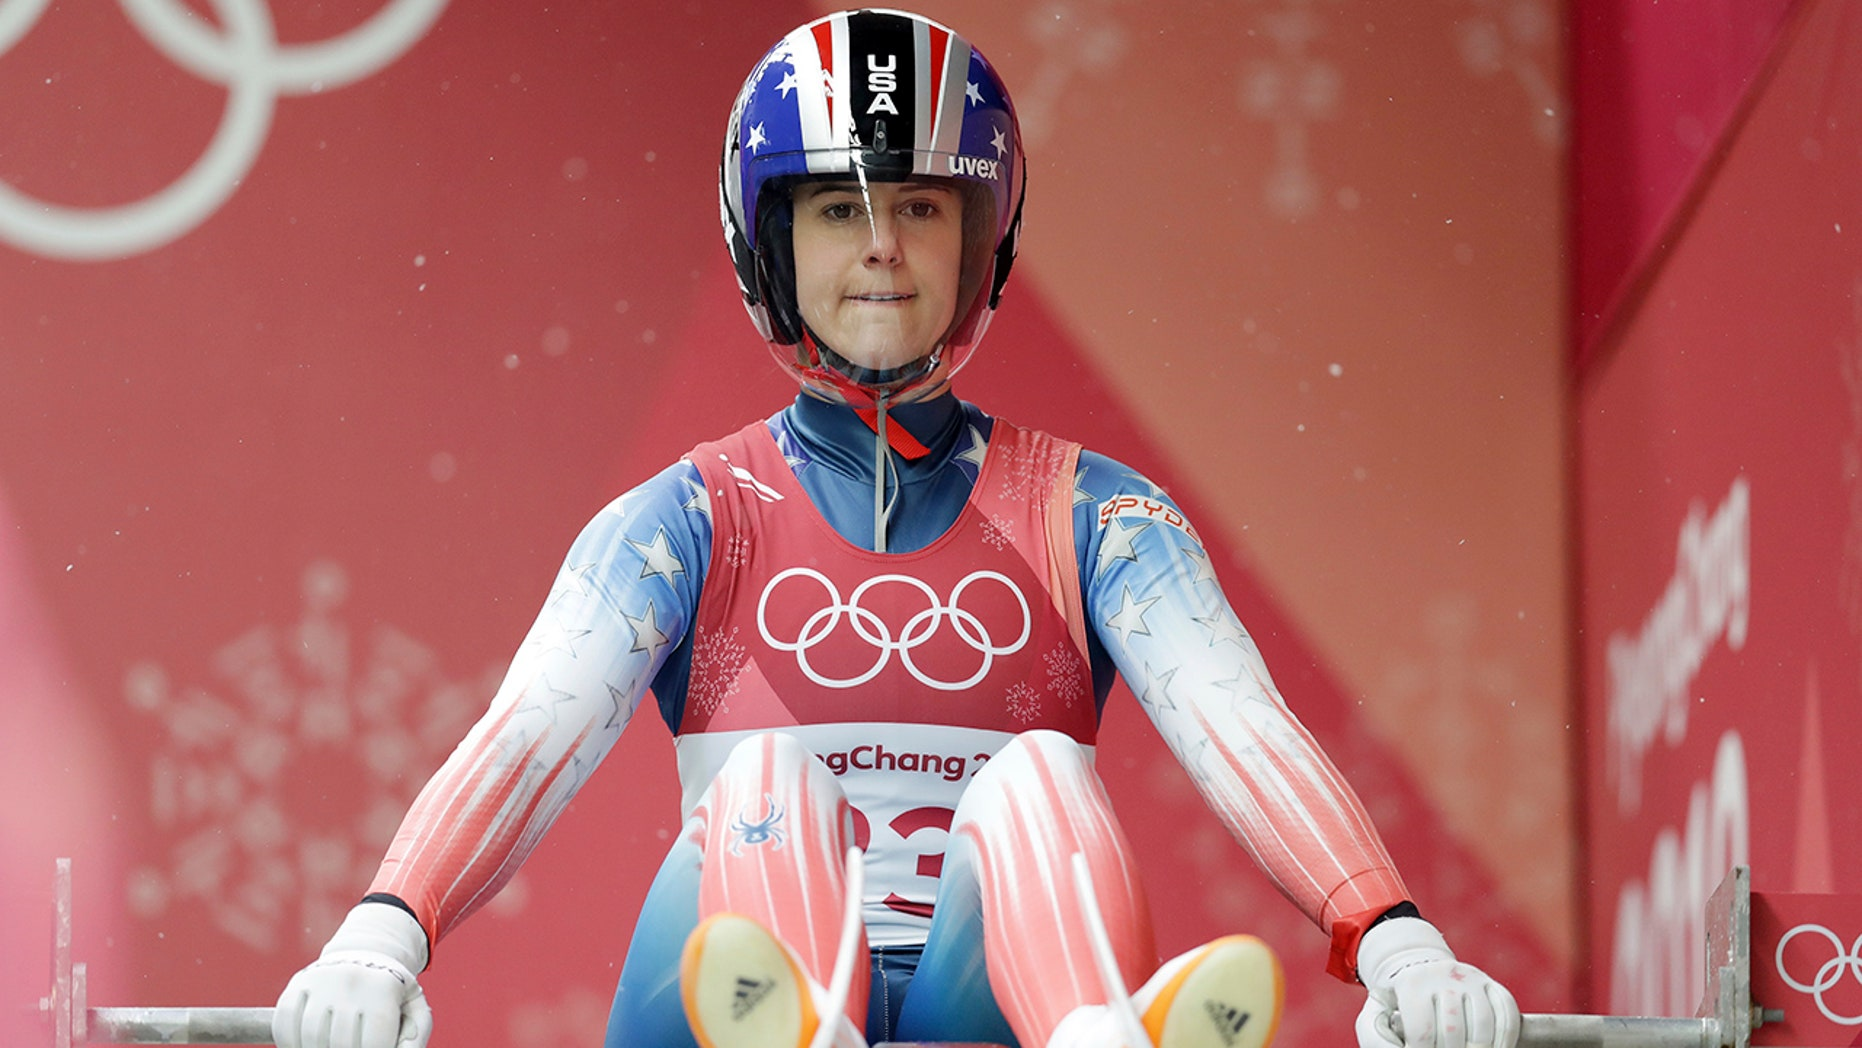 American luger Emily Sweeney suffered a horrific crash in her final run at the 2018 Winter Olympics in Pyeonchang, South Korea.